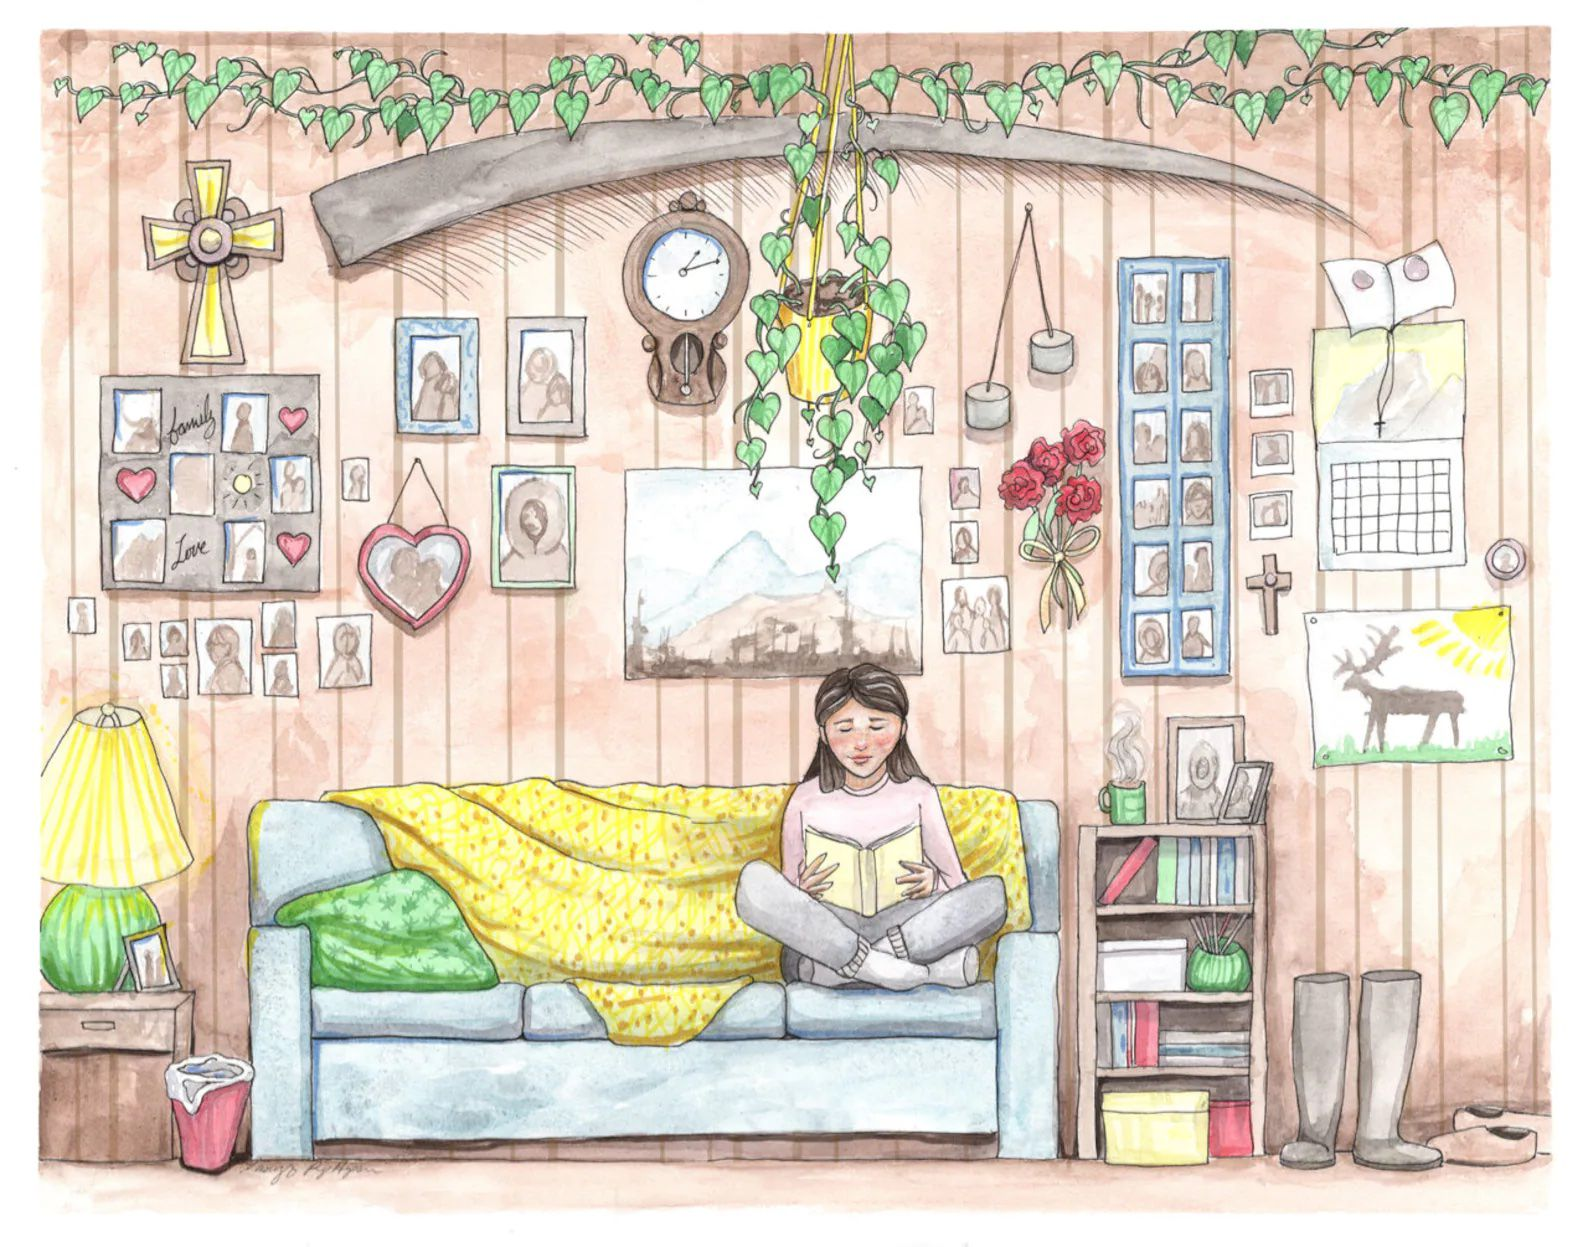 A watercolor print depicting a cozy living room with pictures and plants hanging on the wall, with a blue sofa in the center and an Inupiaq woman reading a book.